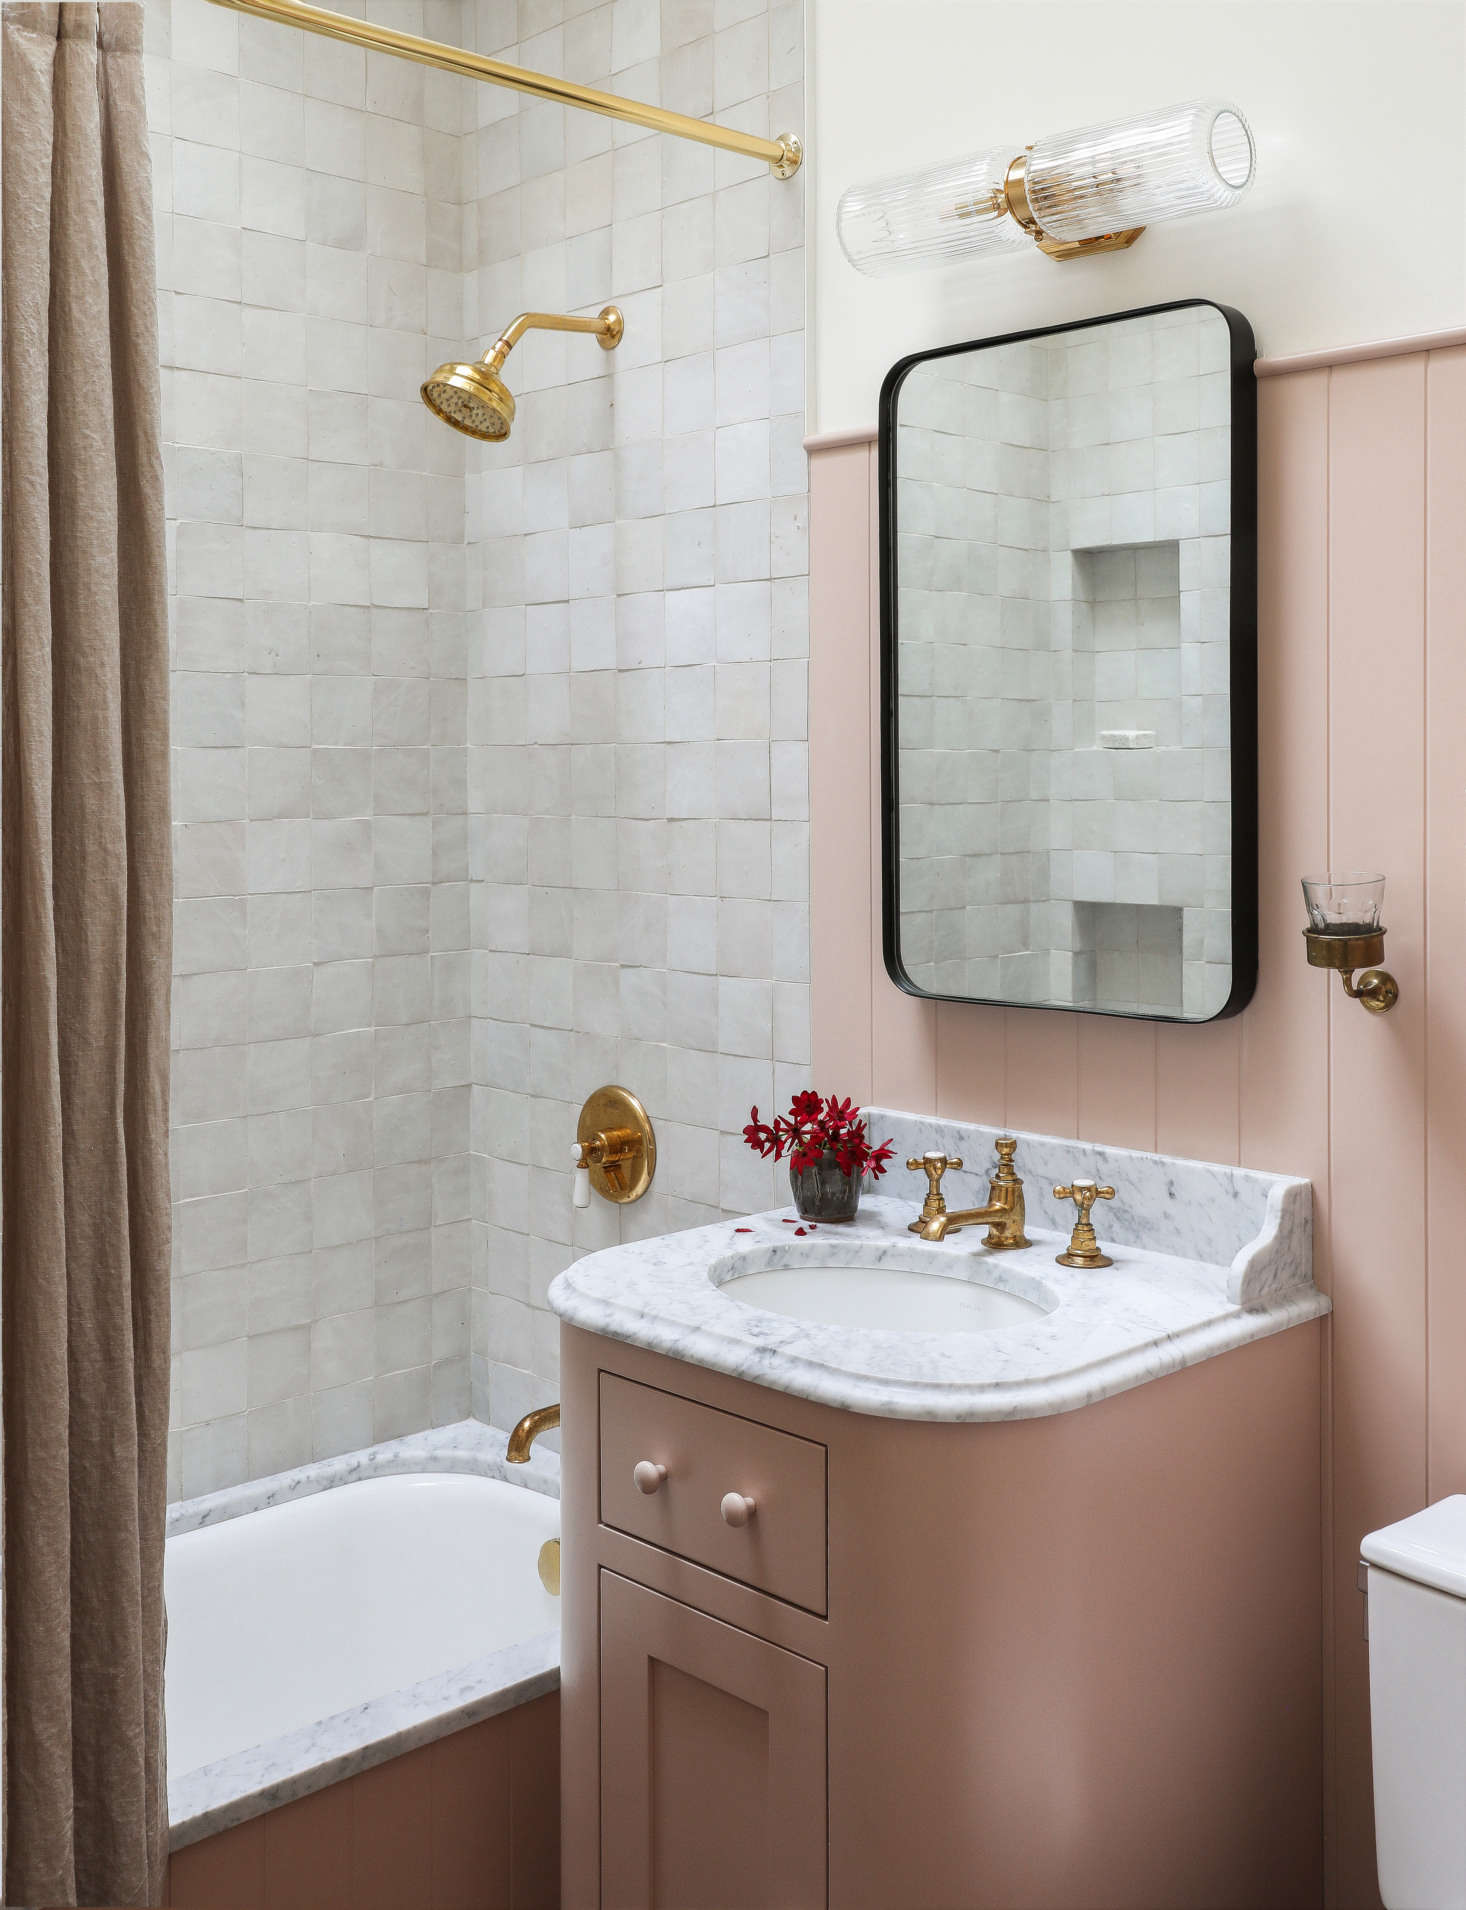 The same vertical paneling applied in the kitchen appears in the overhauled tiny main bath, where a custom pink vanity stands alongside a five-foot-long tub, all painted Farrow & Ball Setting Plaster. &#8